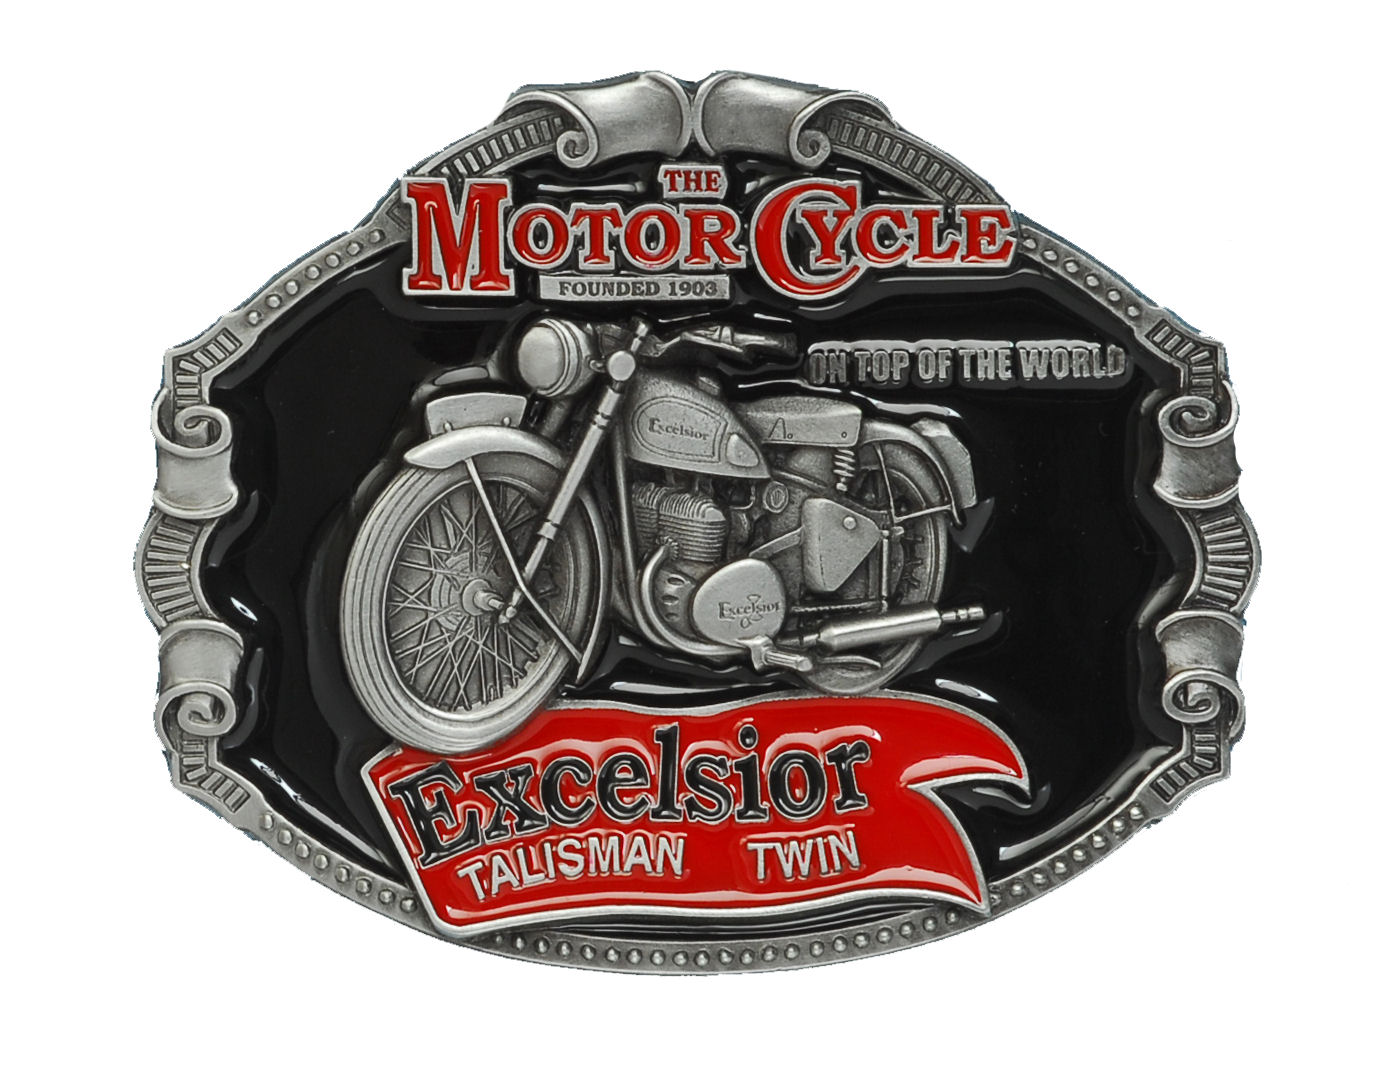 Excelsior Motorcyckle Belt Buckle